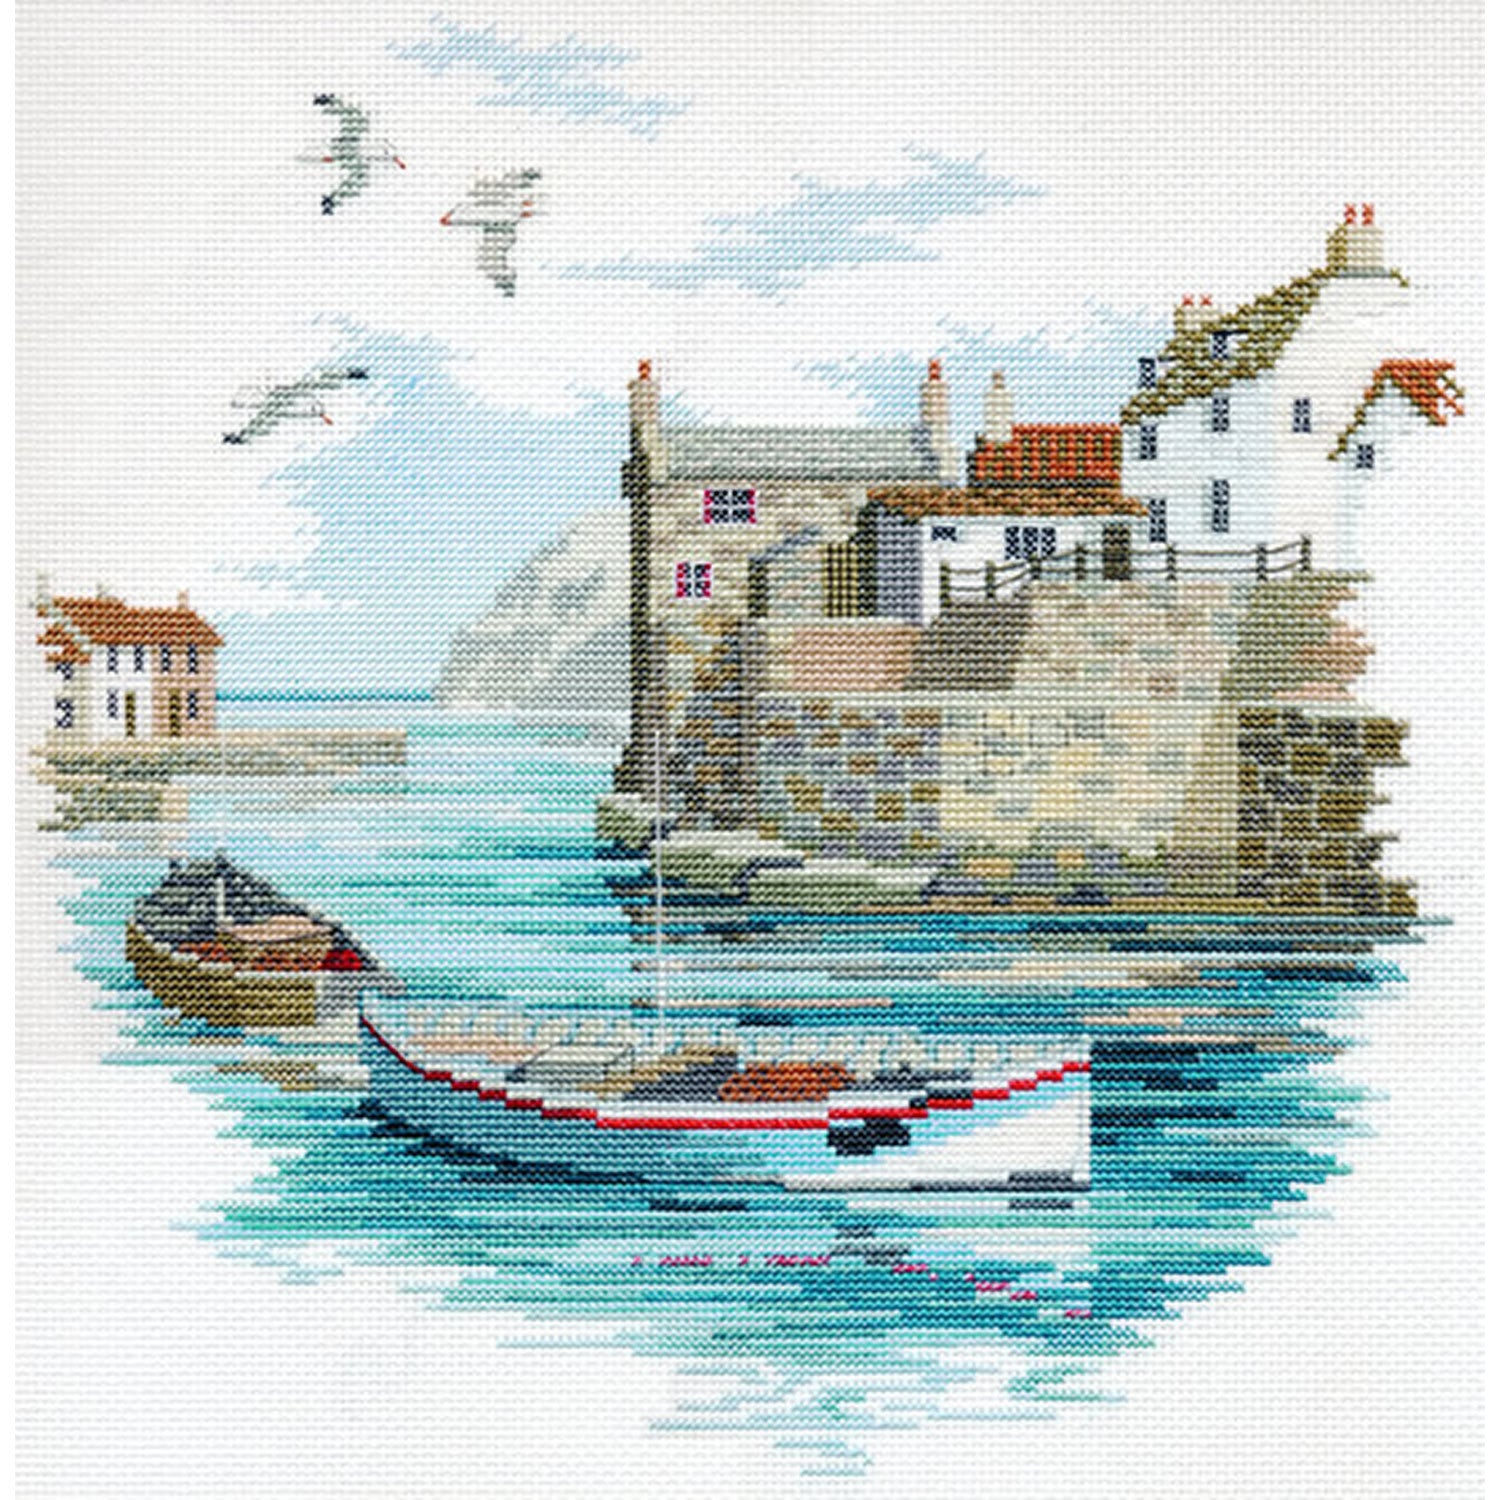 Coastal Britain - Secluded Port<br />Counted Cross Stitch Kit